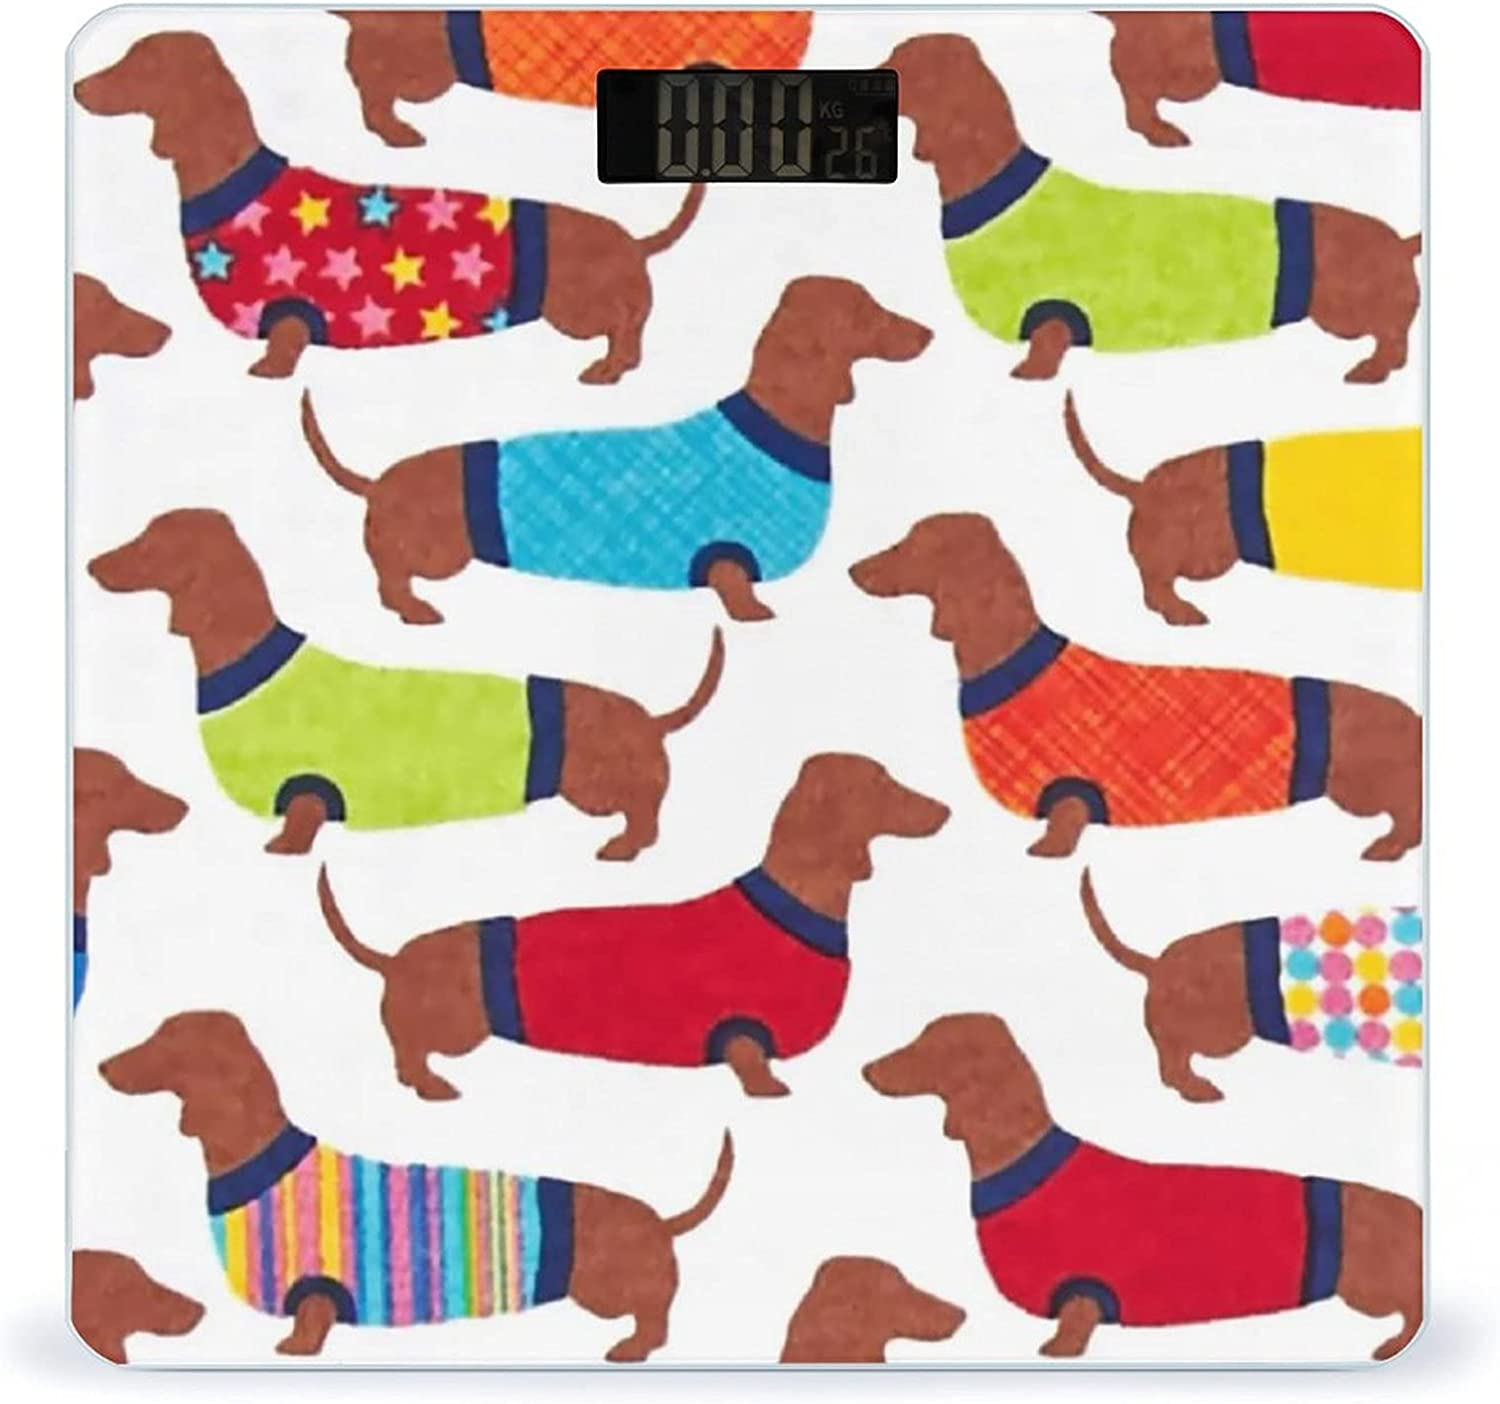 Colorful Dressed Dachshund Fees free!! Highly Import Accurate Smart Fitness W Scale